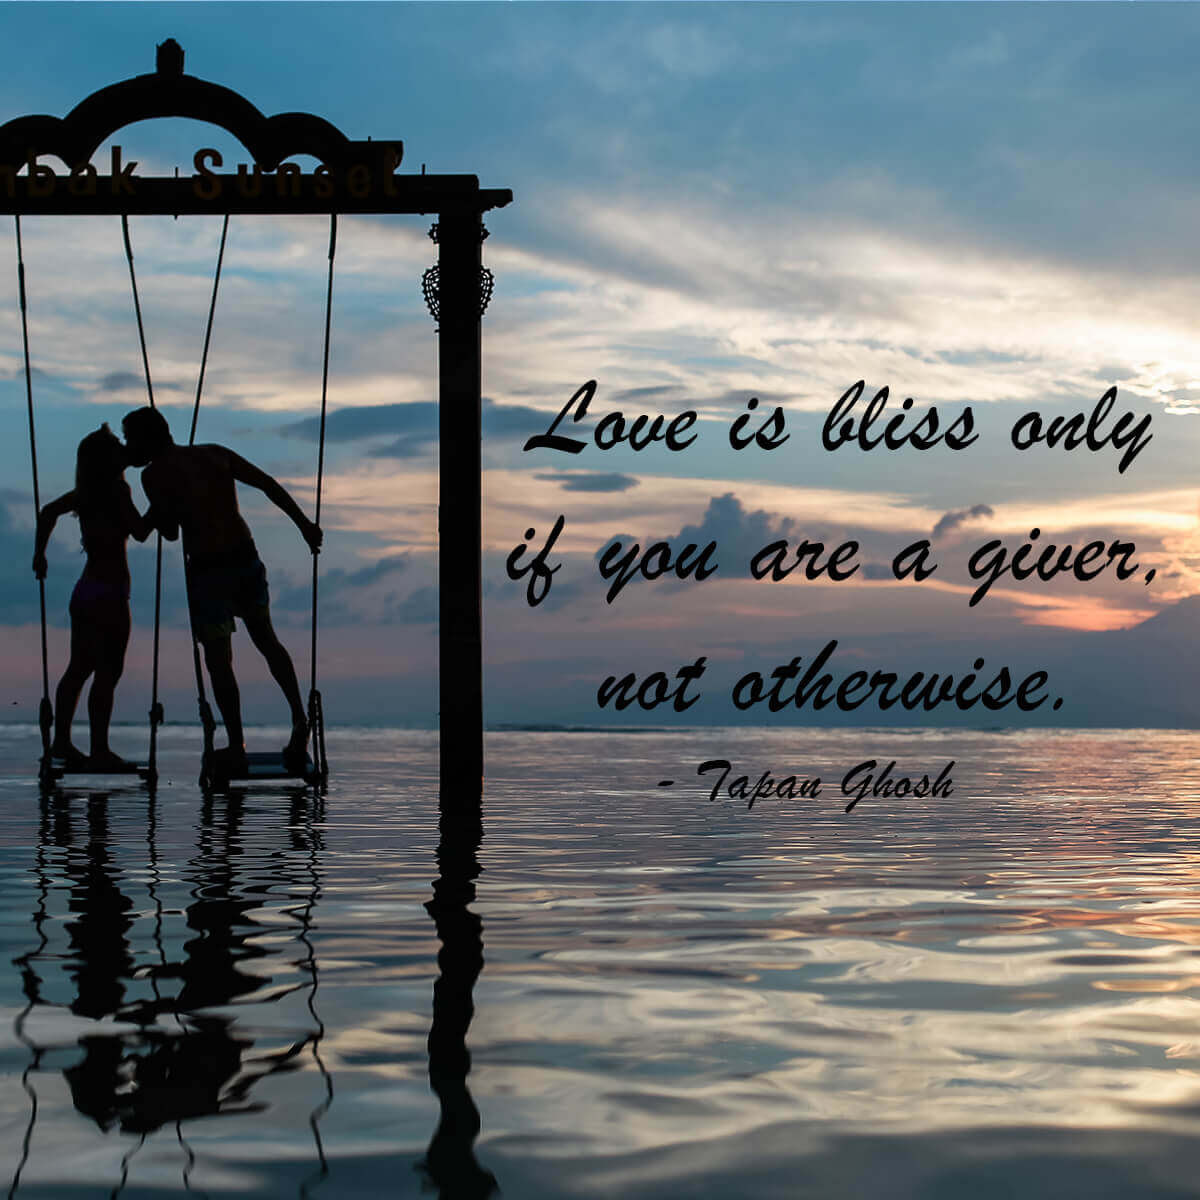 Love Is Bliss Only If You Are A Giver Not Otherwise Tapan Ghosh